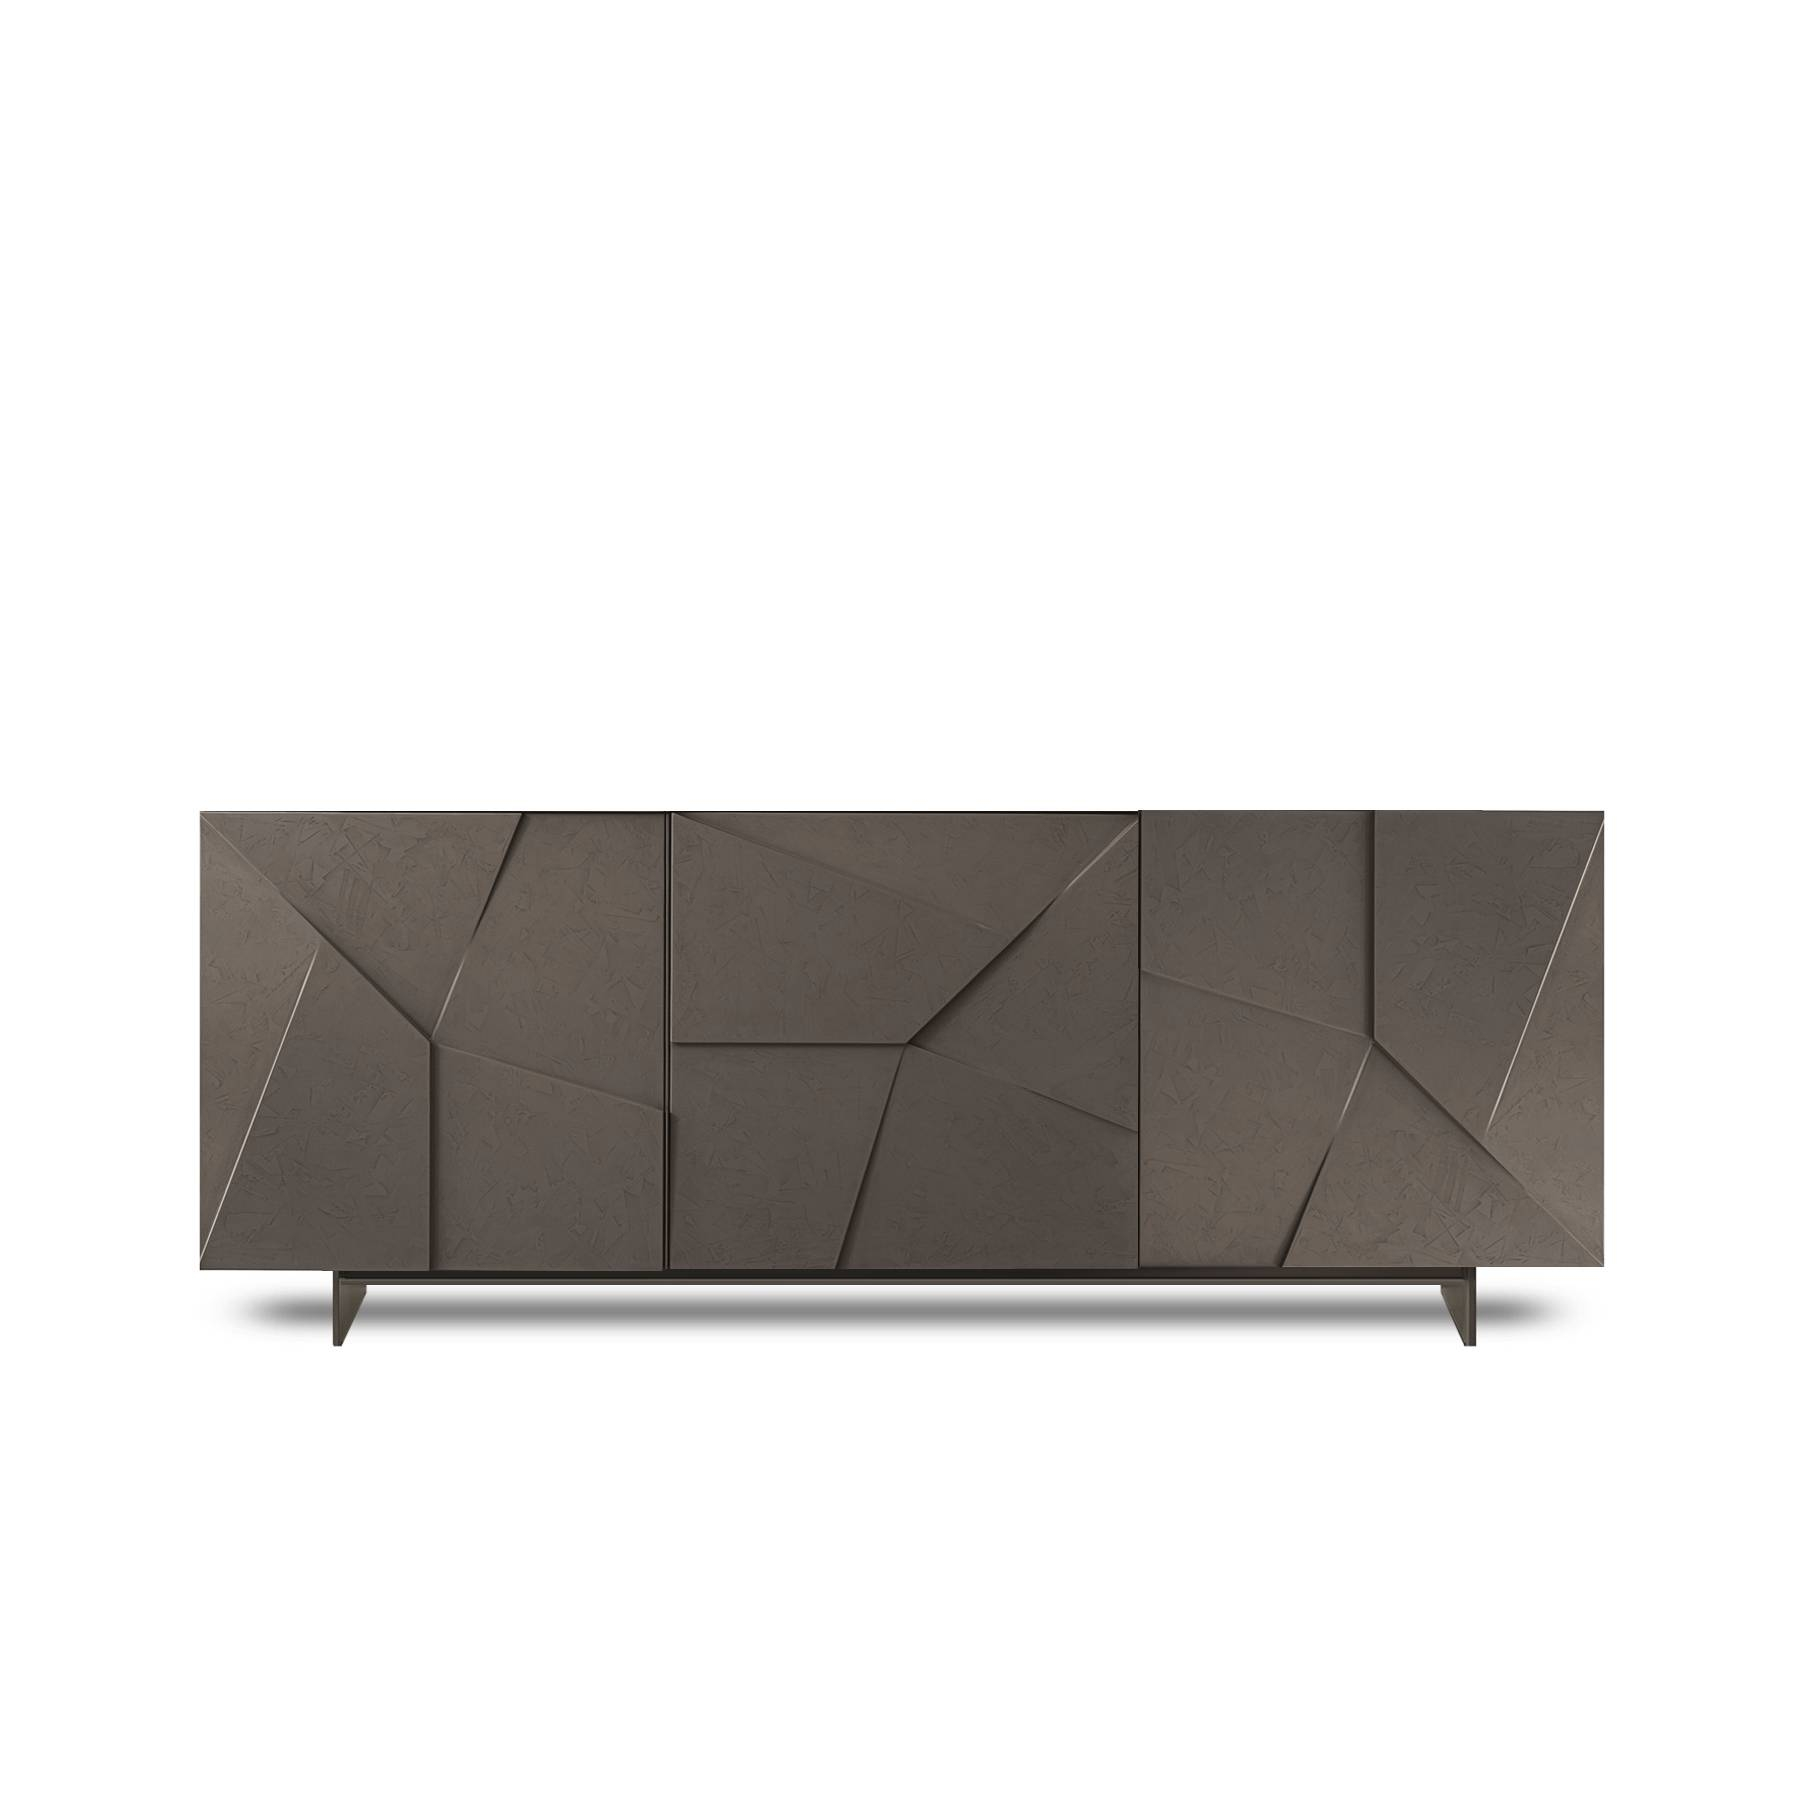 Modern Contemporary Sideboards, Storage Units My Italian Living Ltd Pertaining To Contemporary Sideboards (View 6 of 20)